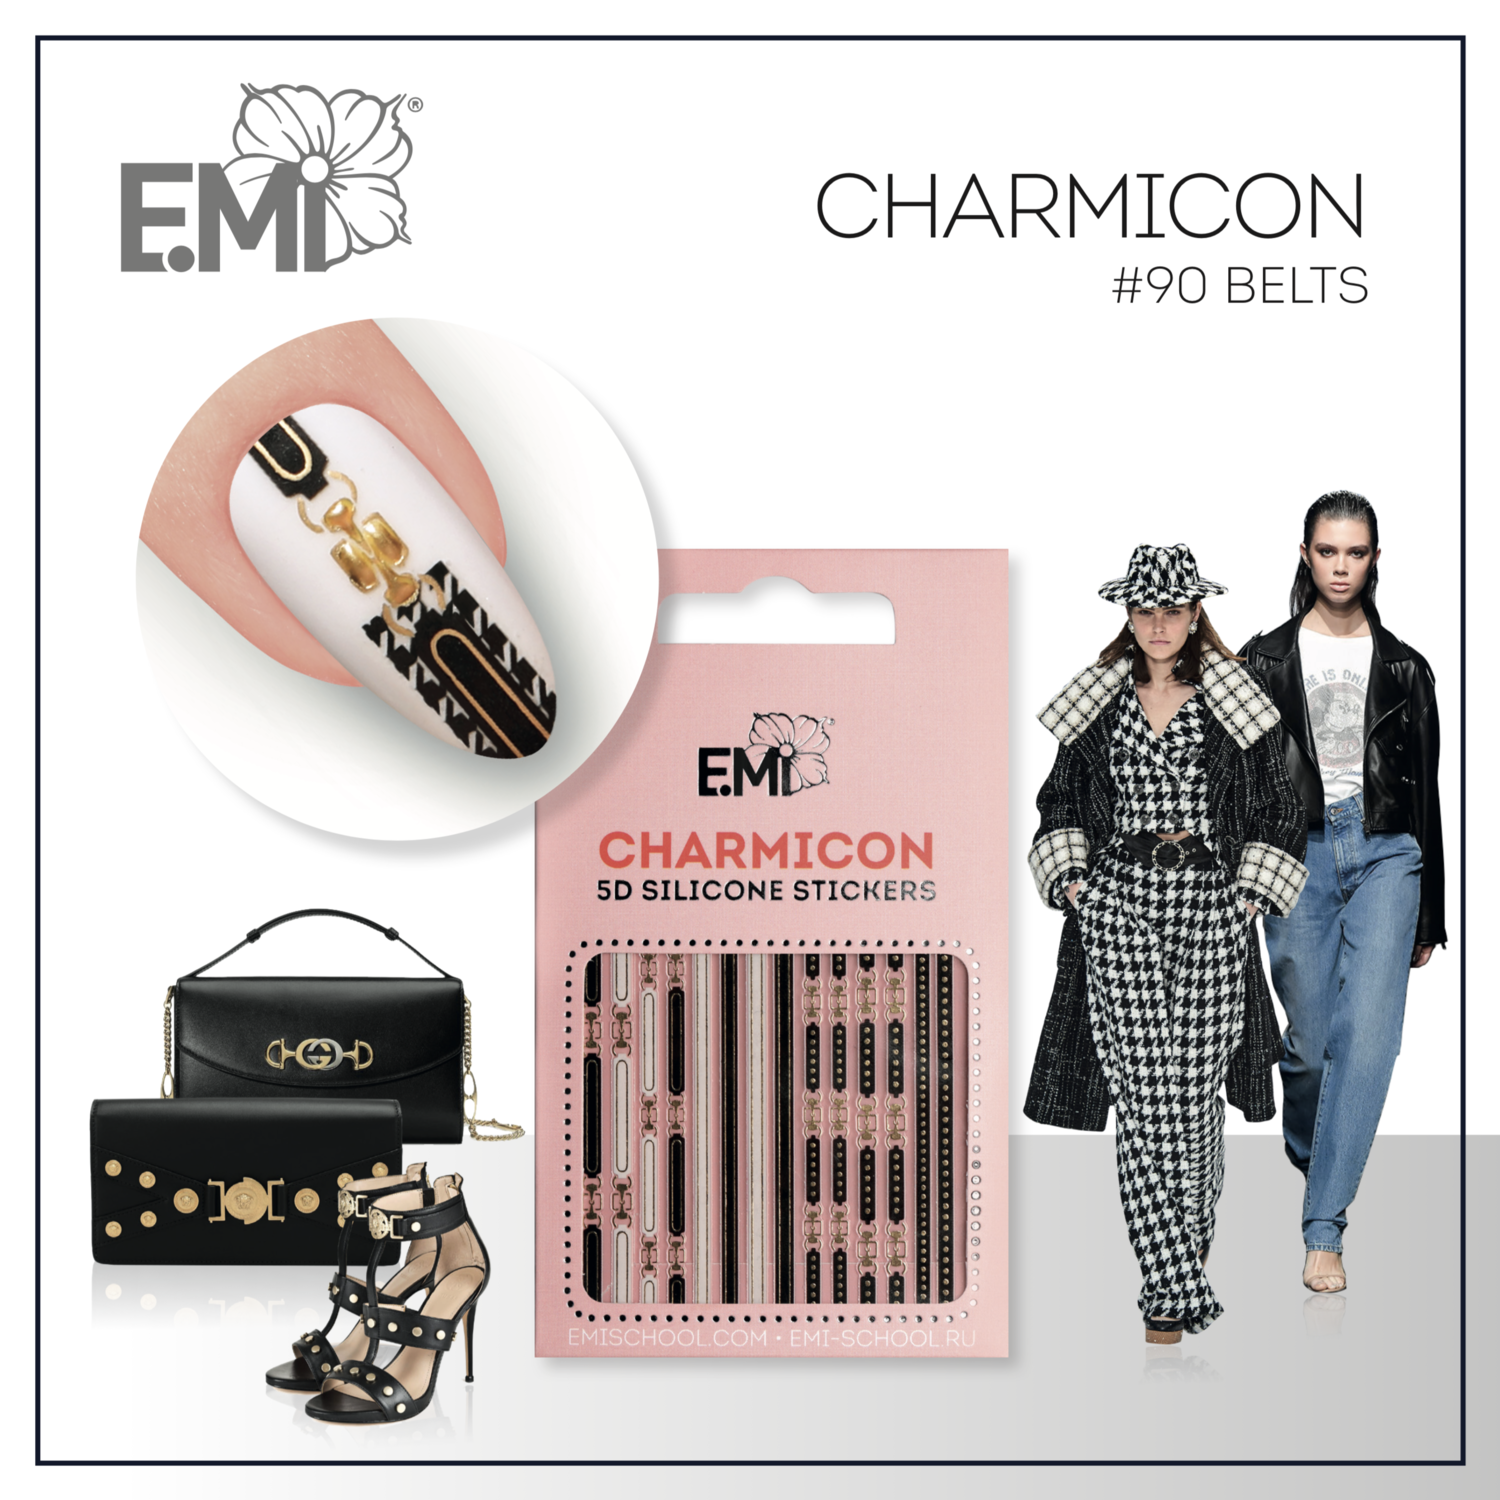 Charmicon Silicone Stickers #90 Belts